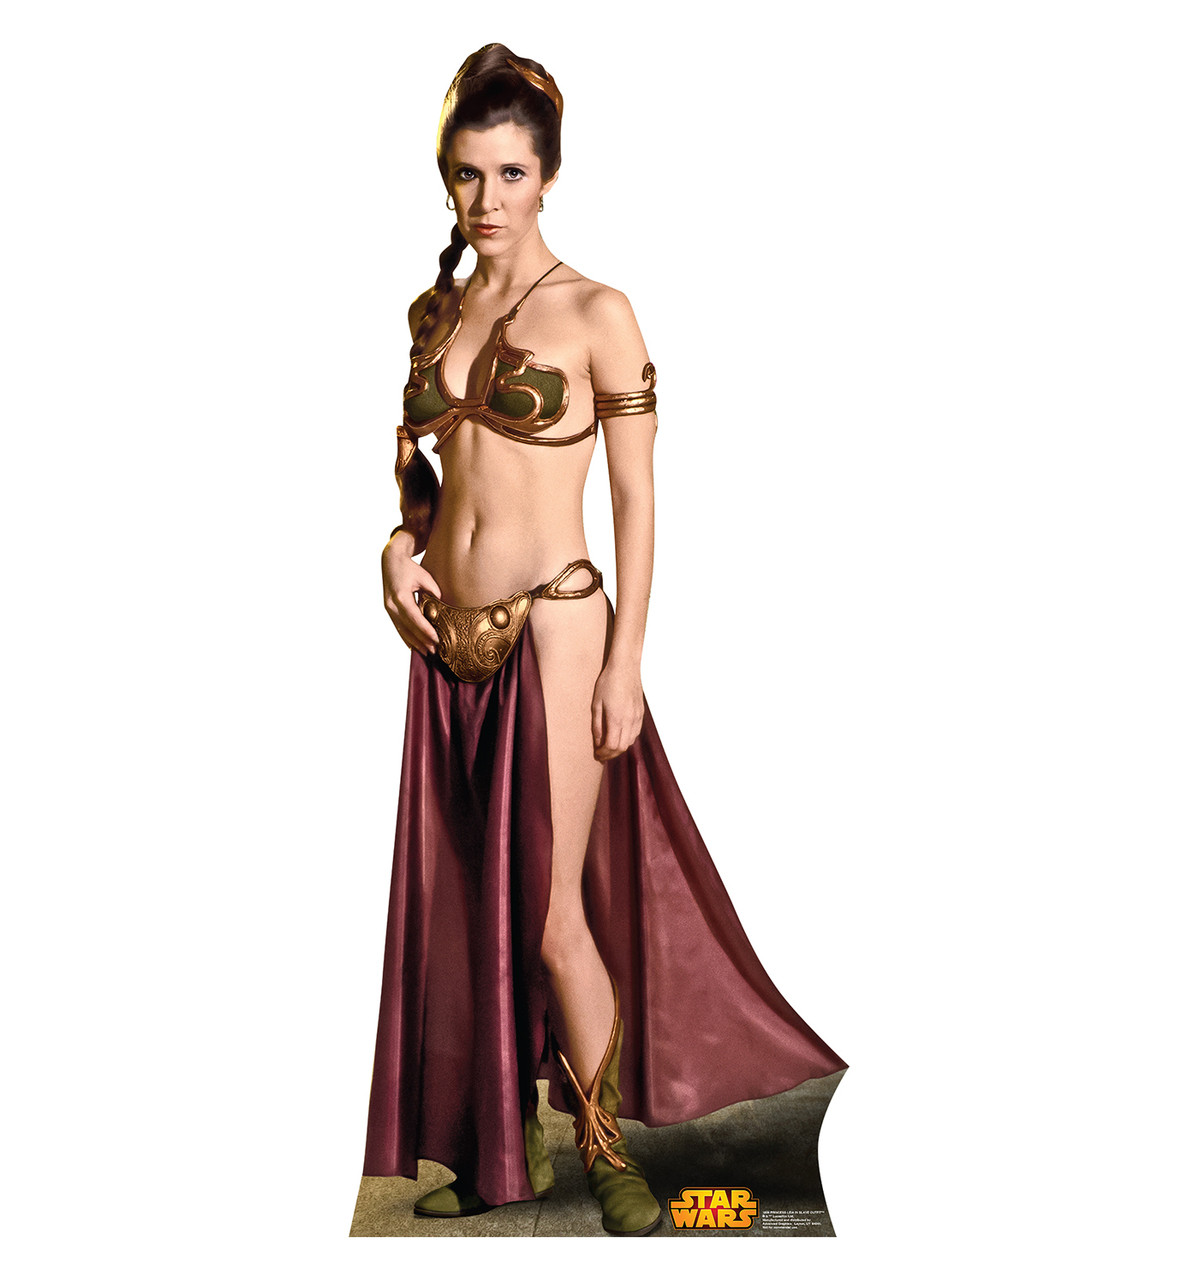 a9294925b01 Image for Star Wars Lifesize Standup - Princess Leia Slave Girl Classic.  Loading zoom